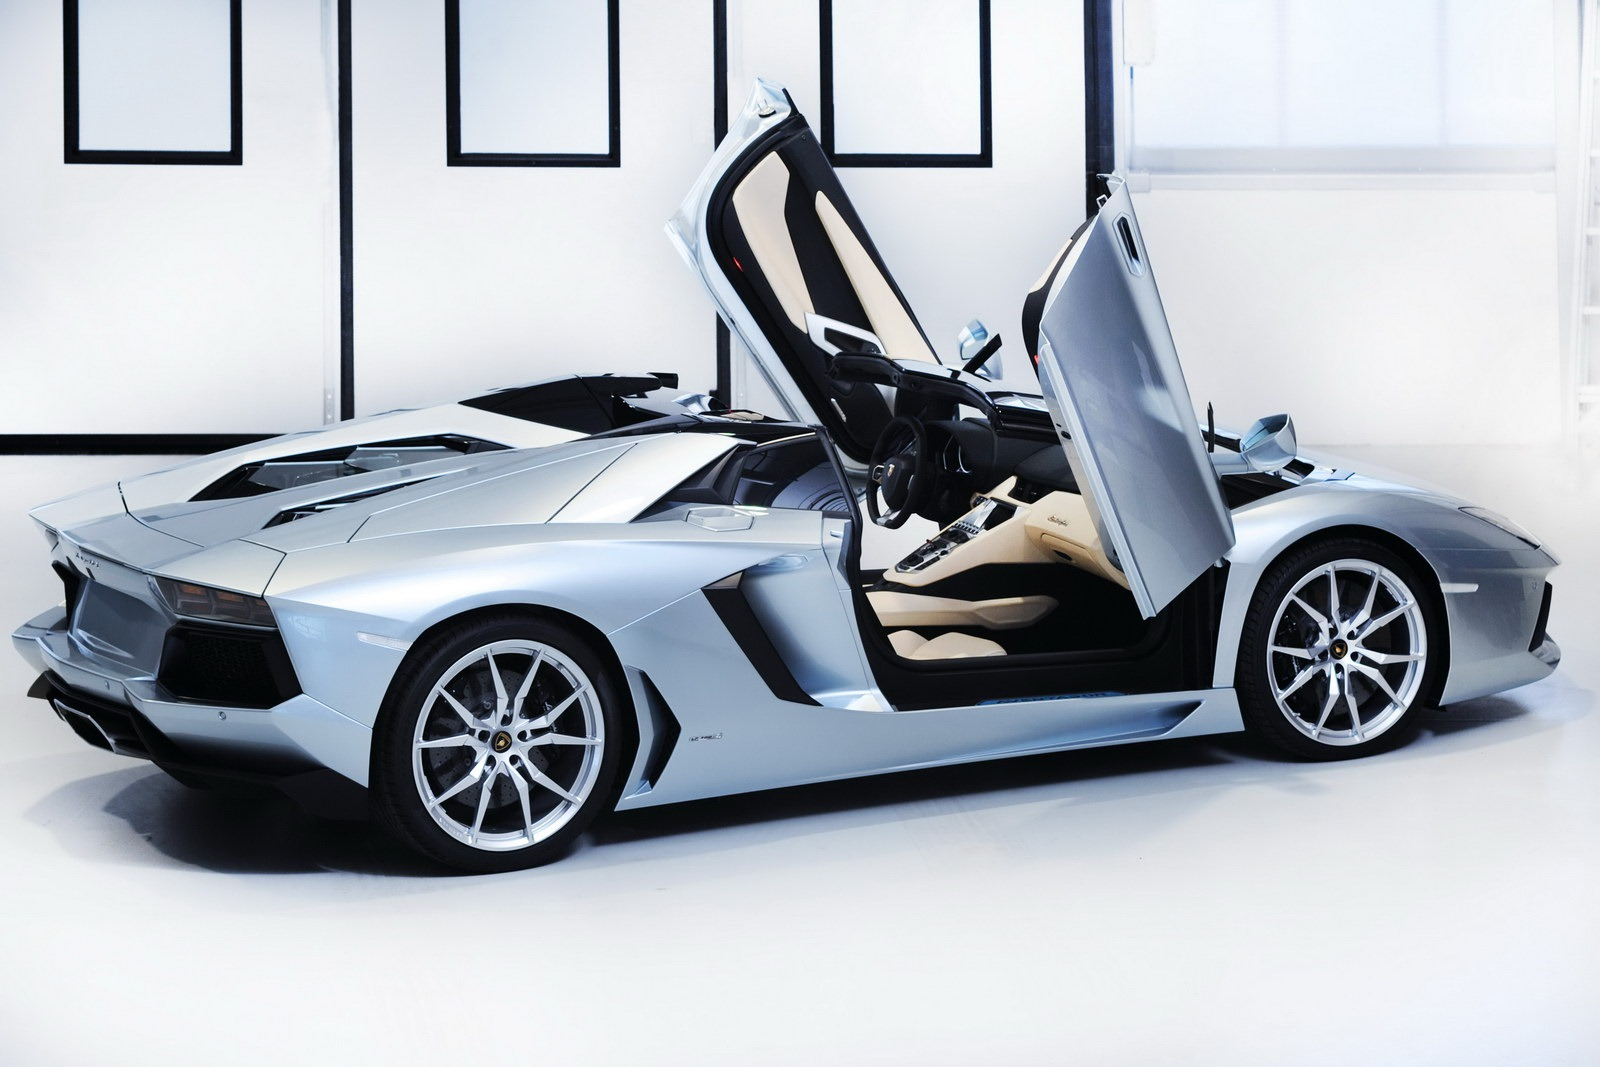 Lamborghini to make their fastest production car ever